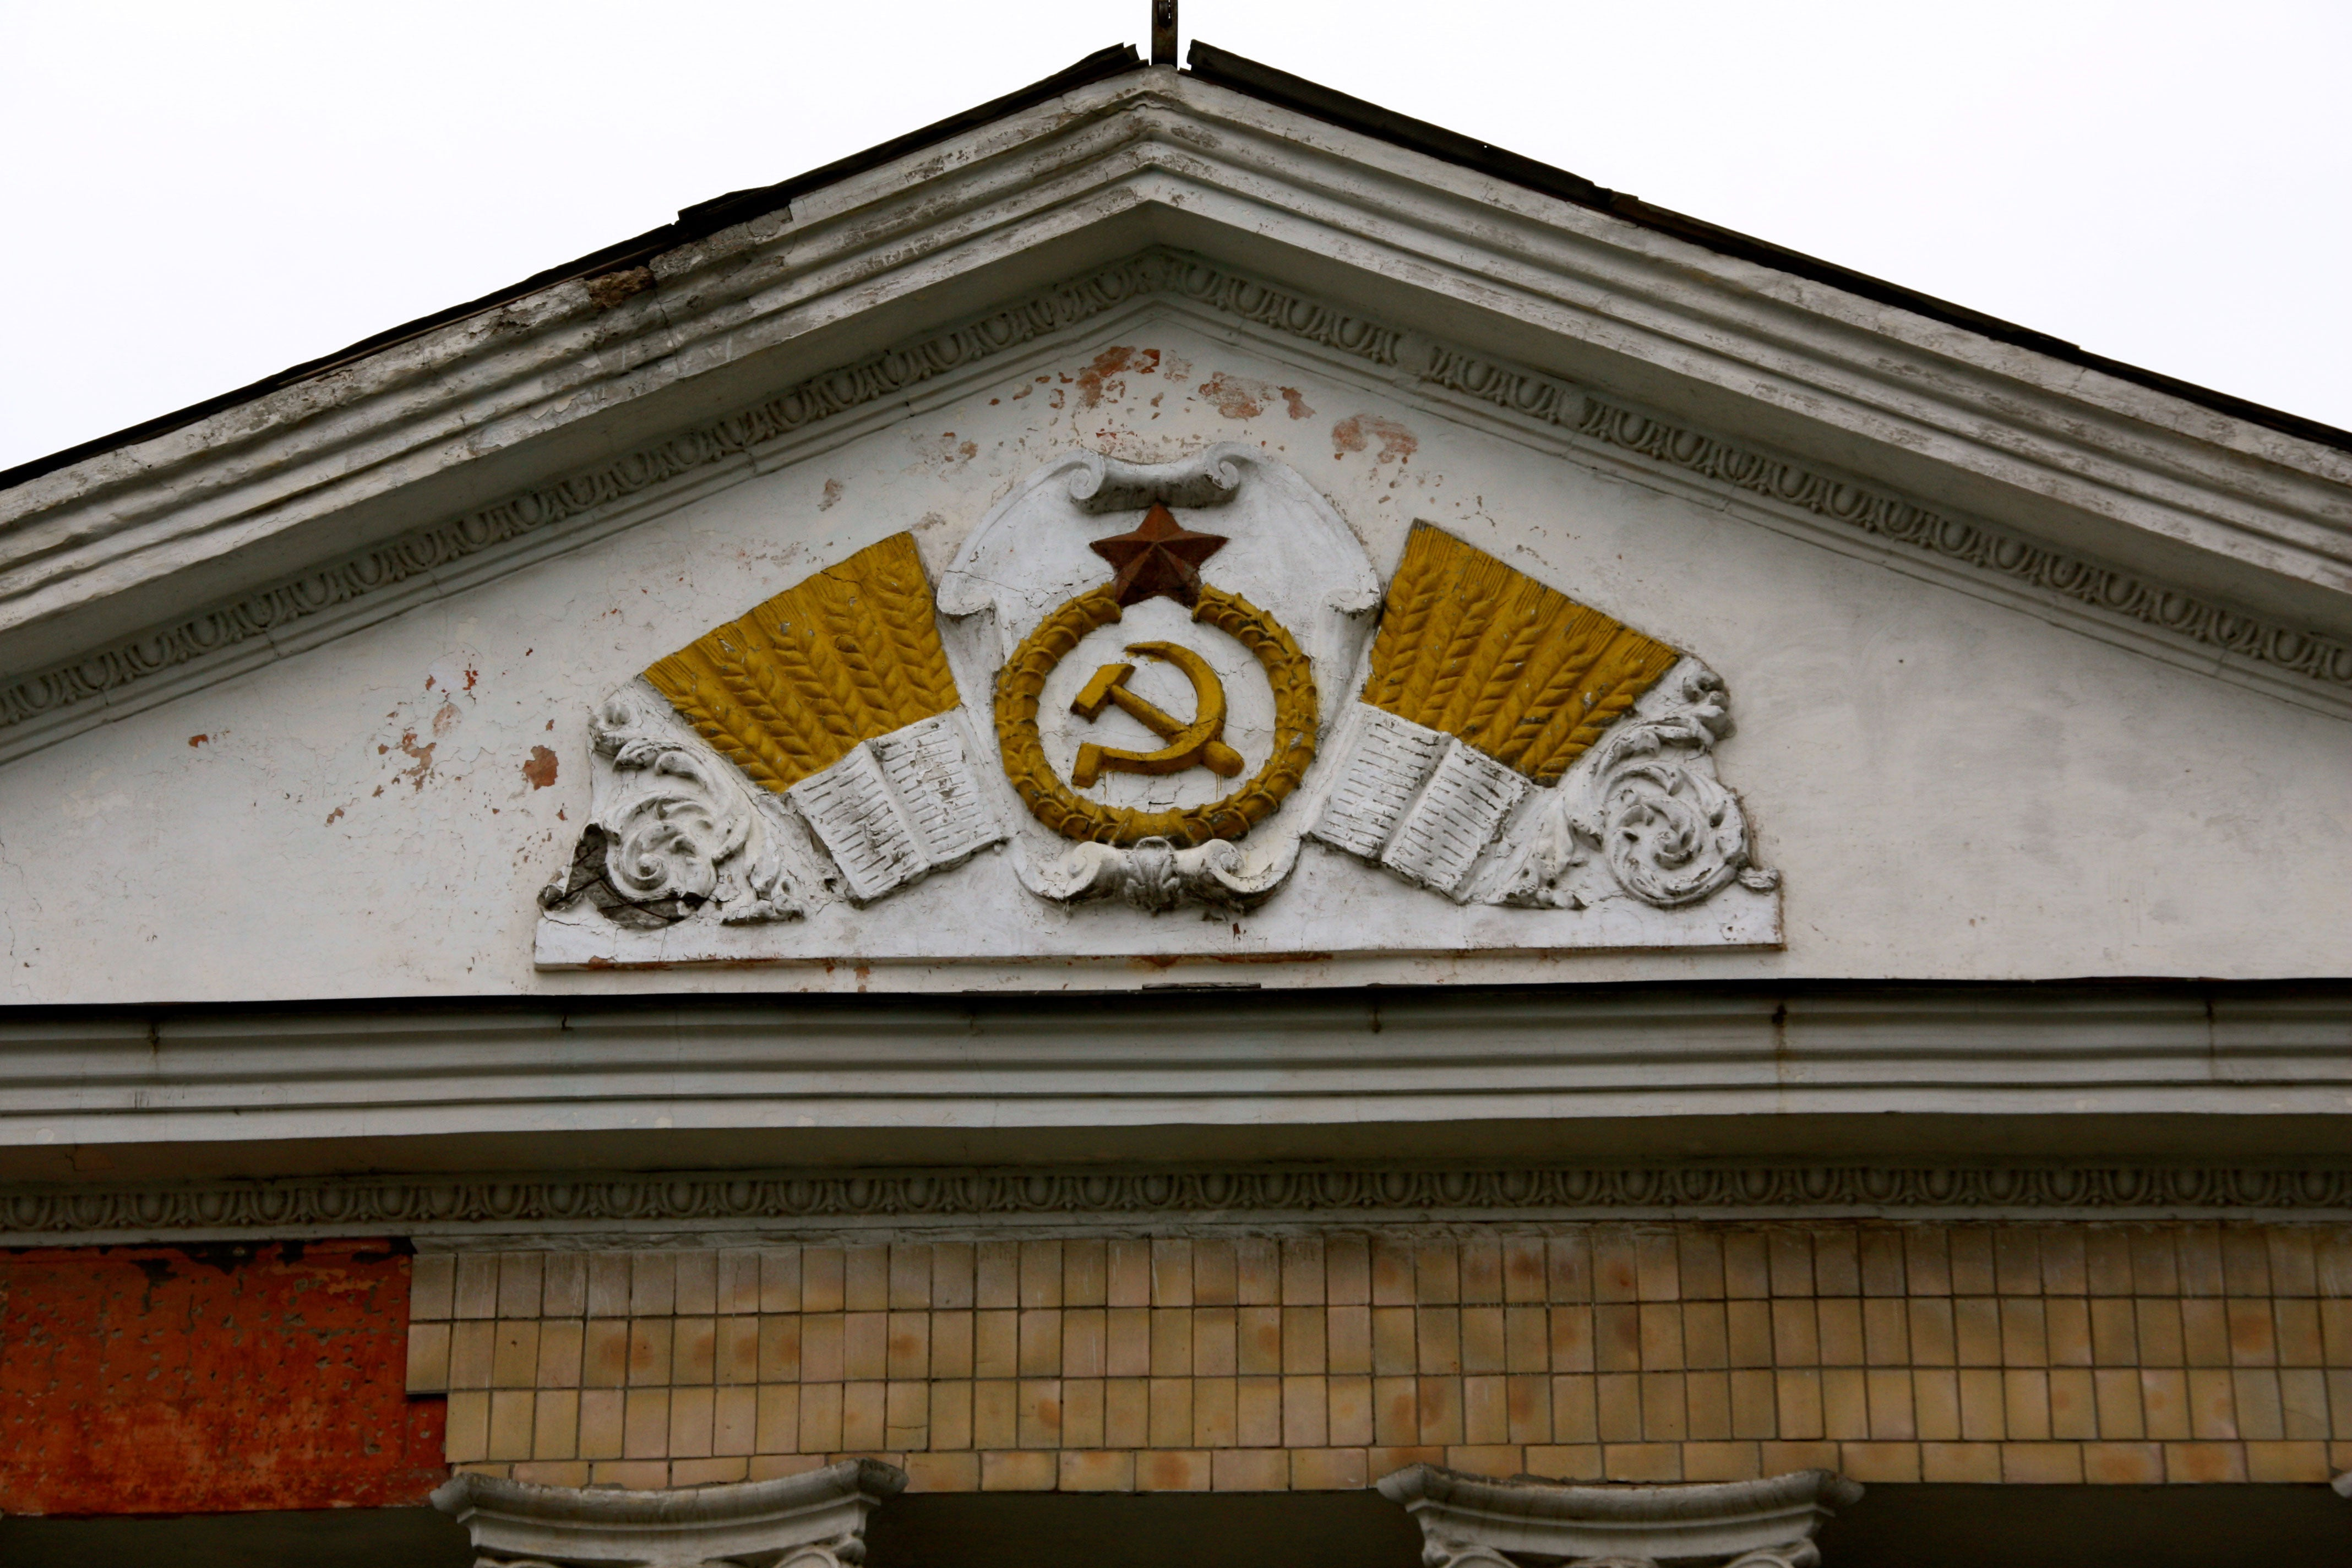 Evidence of Ukraine's Soviet past in the eastern town of Slavyansk. (Photos: Nolan Peterson/The Daily Signal)